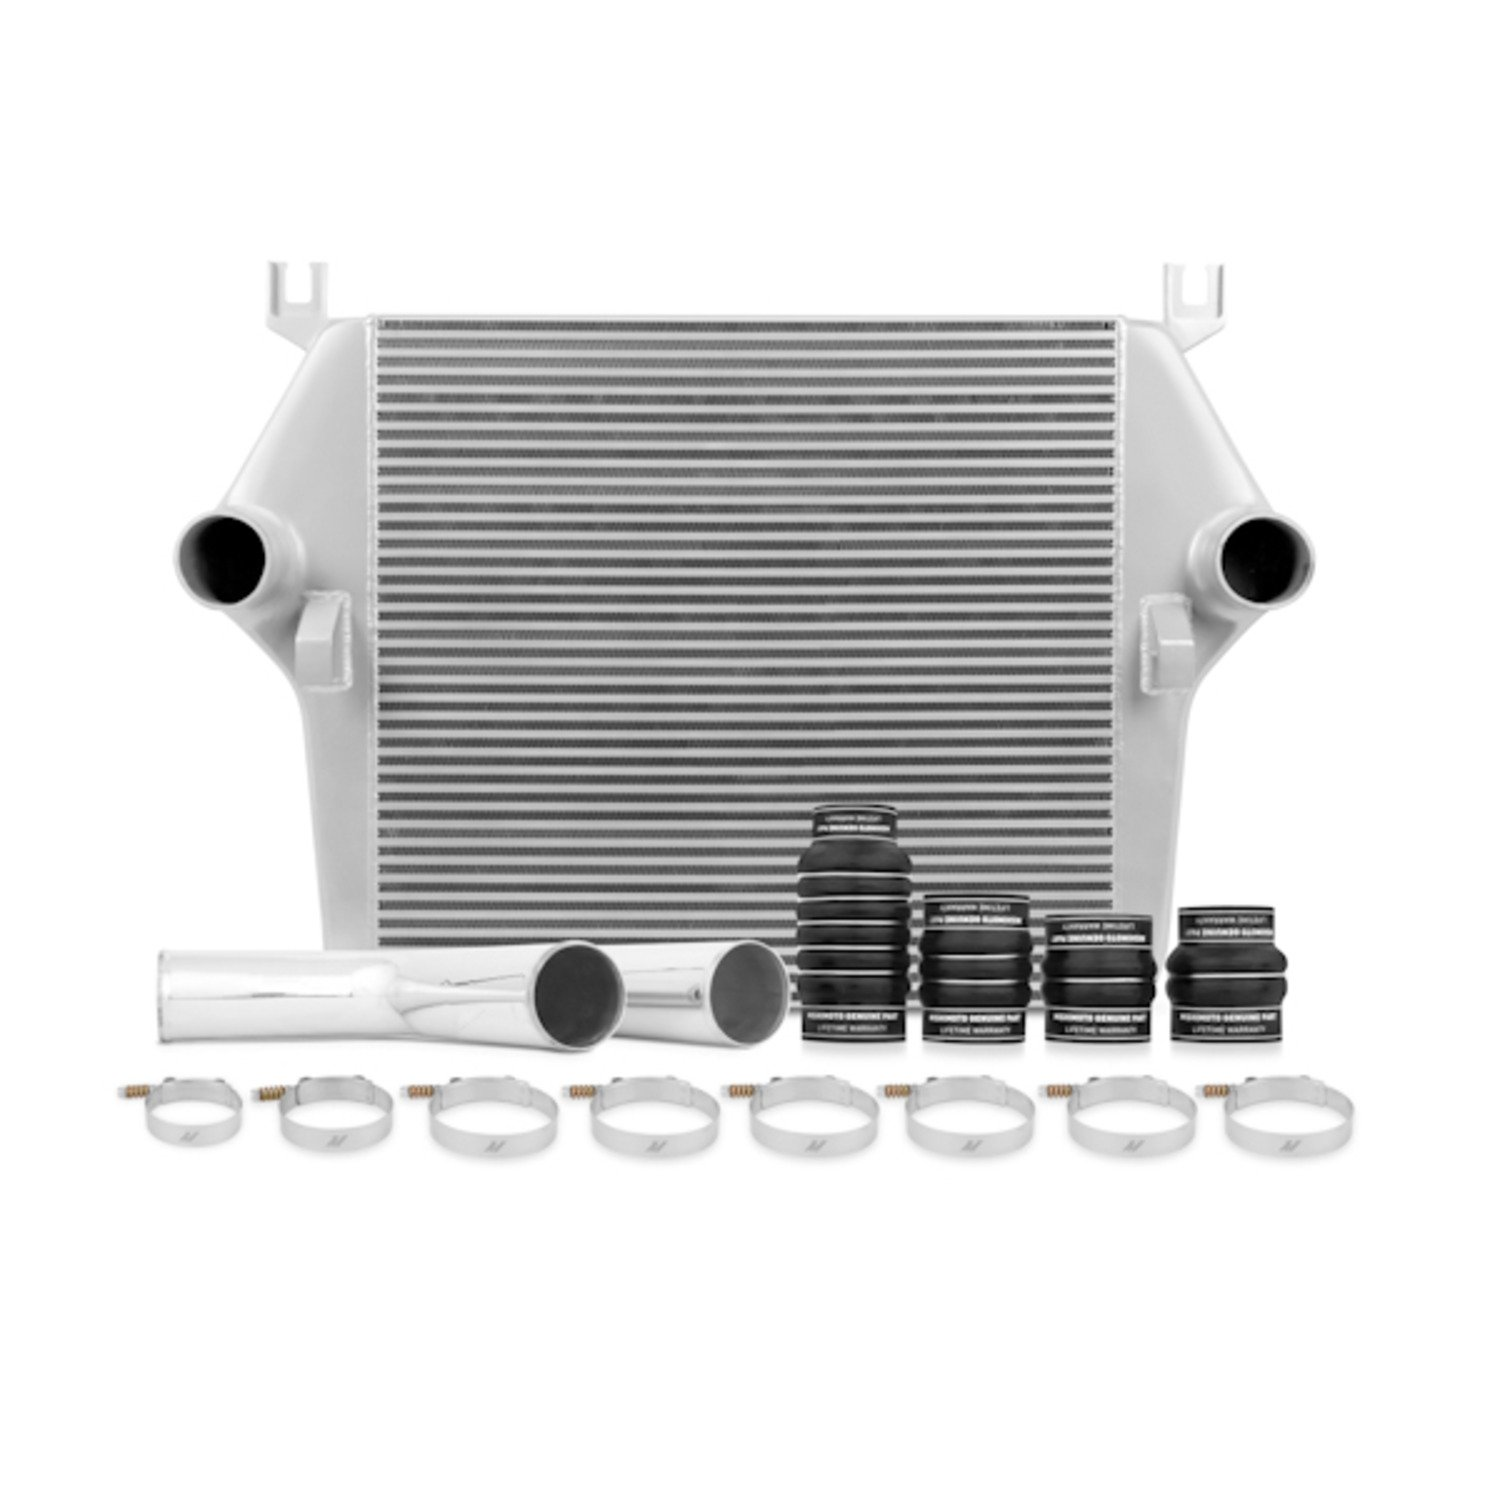 Mishimoto MMINT-RAM-03KSL Dodge 5.9L Cummins Intercooler Kit, 2003-2007 Silver